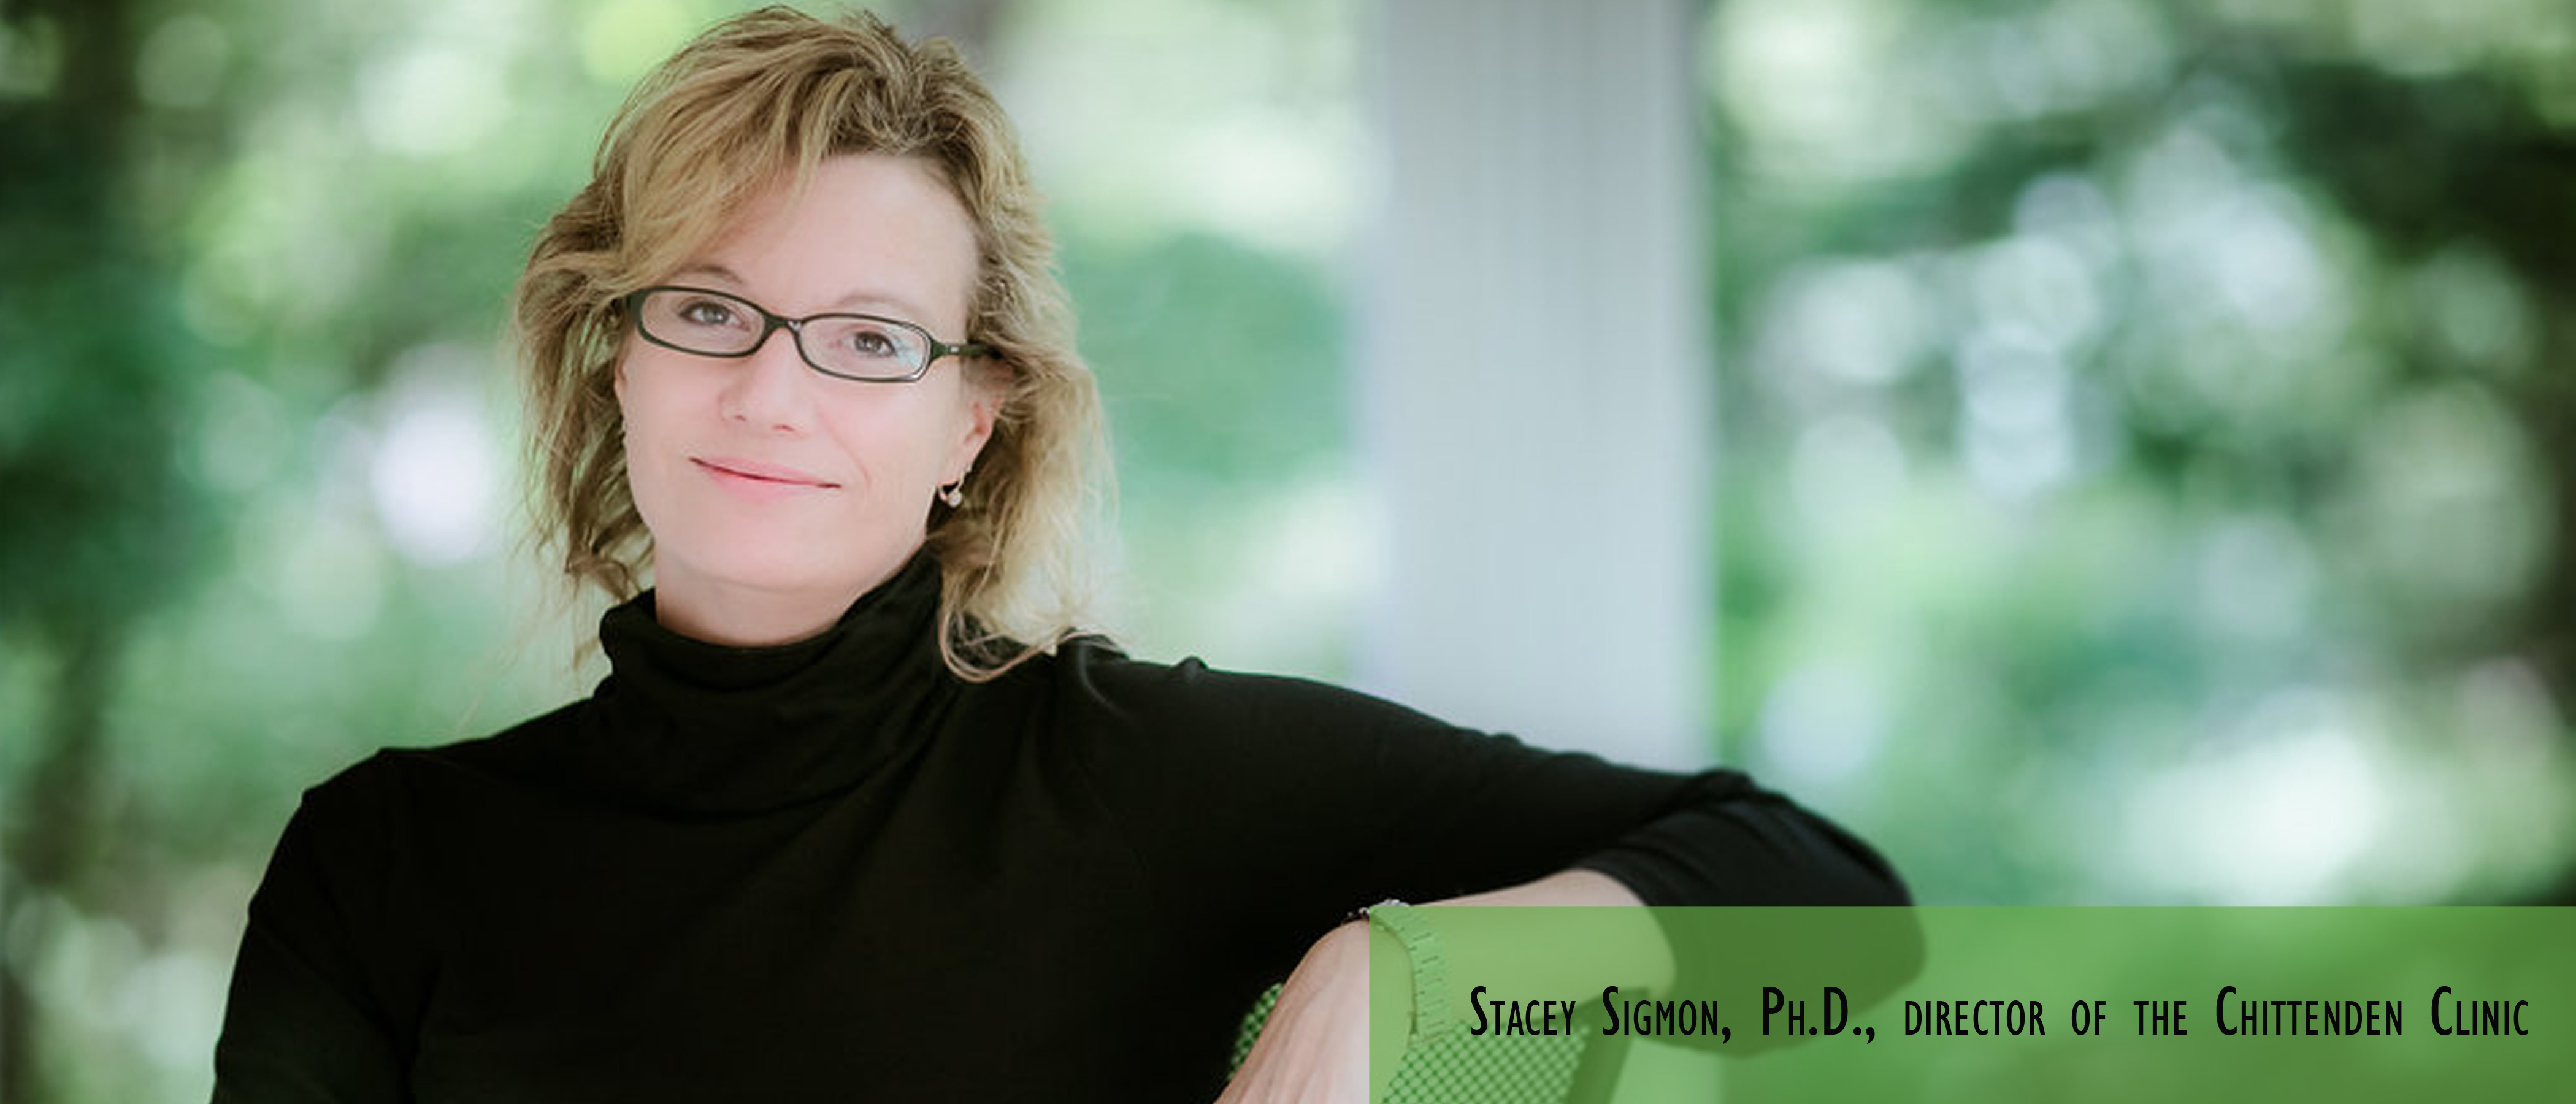 Stacey Sigmon, Ph.D.